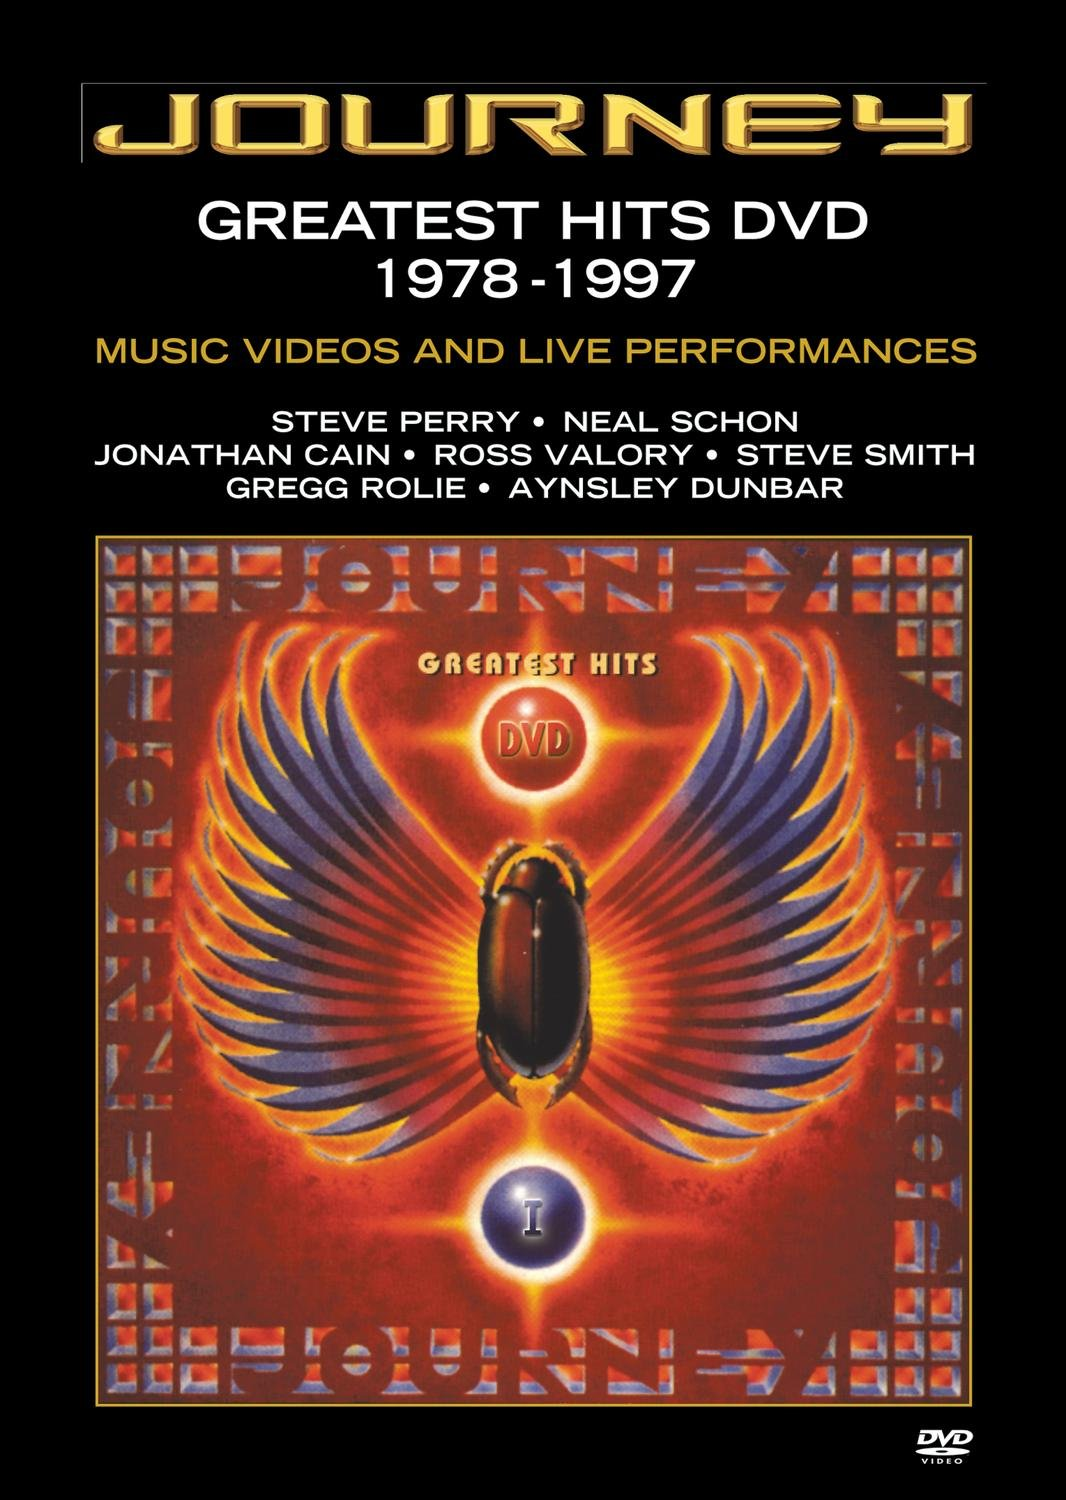 DVD : Journey - Greatest Hits DVD 1978-1997: Videos and Live Performances (DVD)